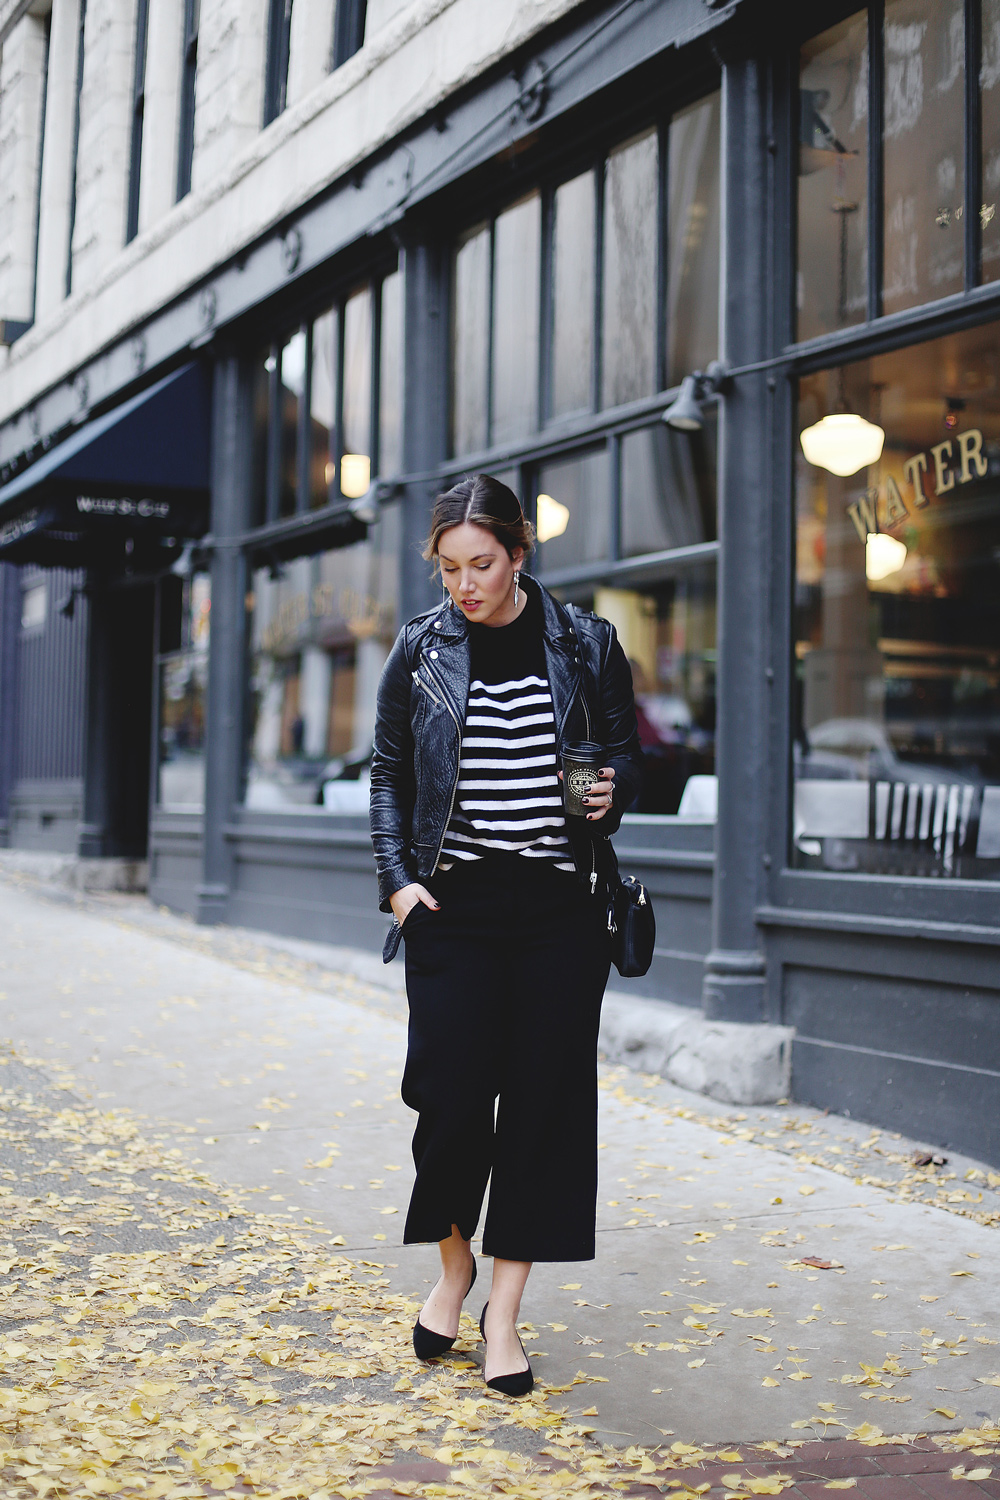 Style tips on how to wear culottes outfit idea by To Vogue or Bust in Express culottes, White + Warren cashmere striped sweater, Swarovski jewelry, Express heels, Aritzia leather bag